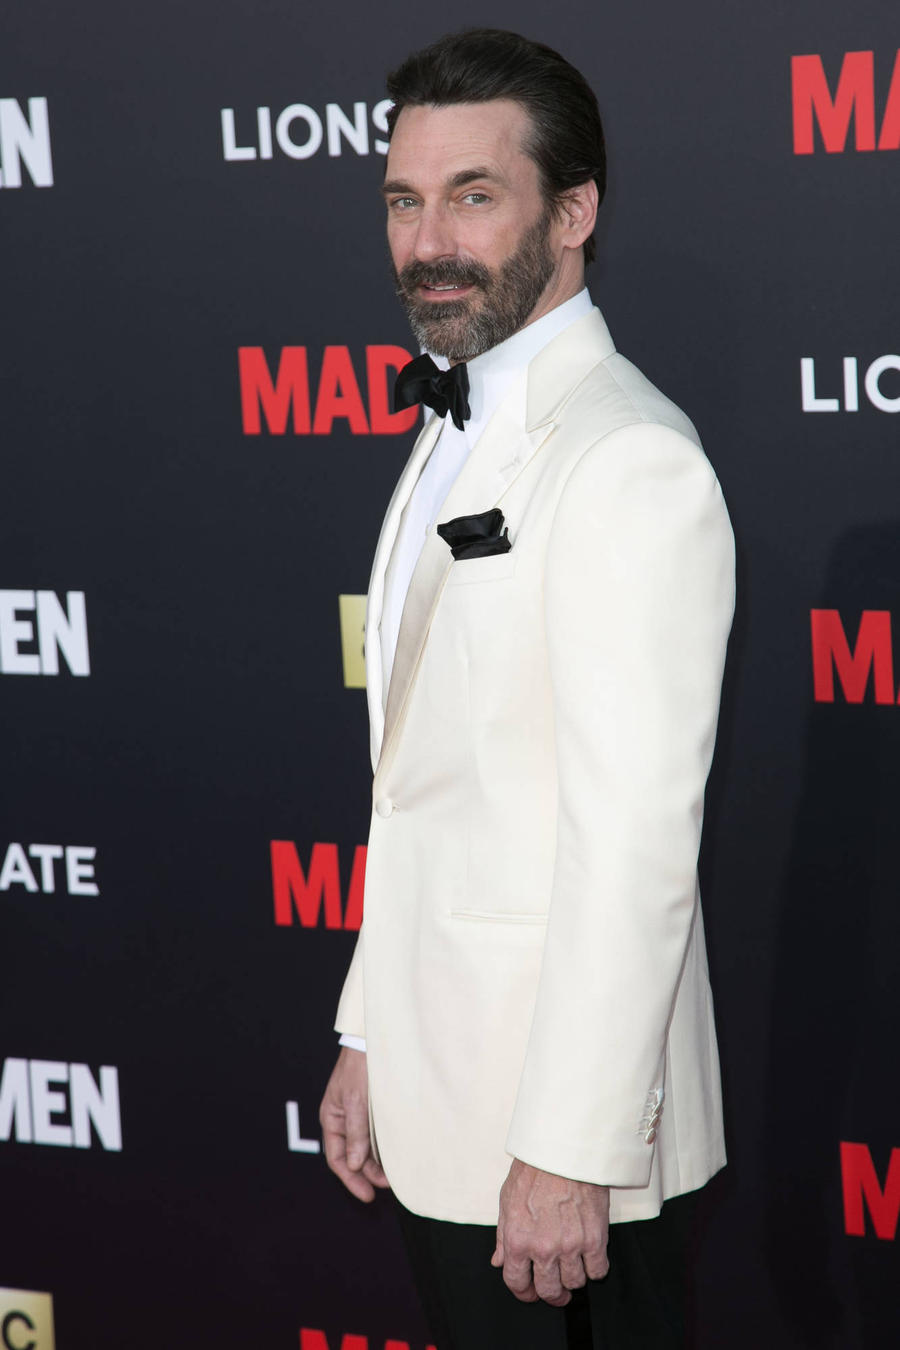 Mad Men Props And Wardrobe Items Up For Sale